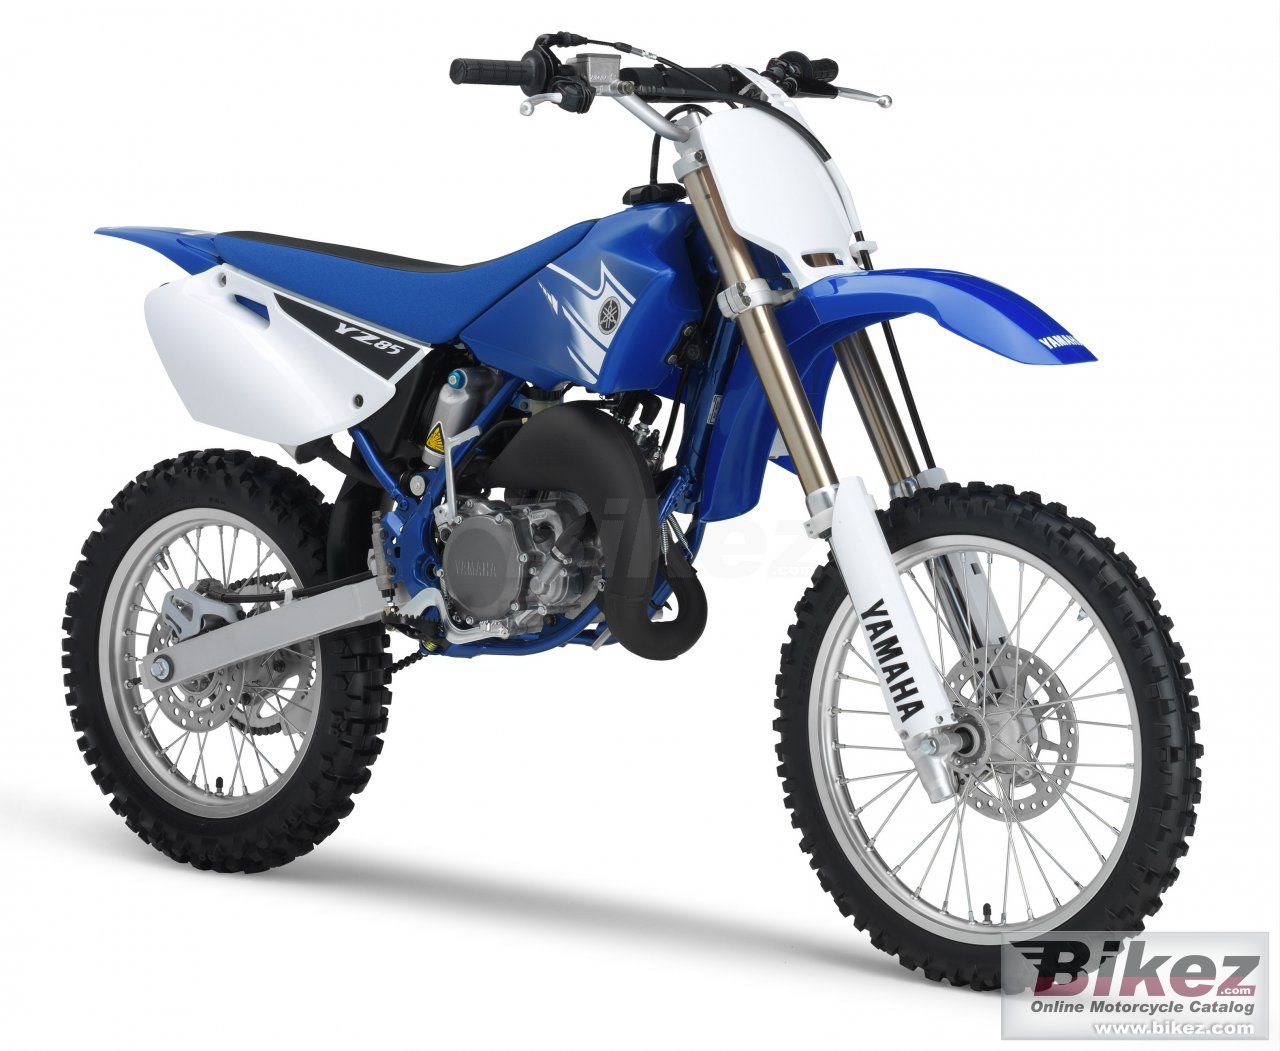 Big Yamaha yz85 lw picture and wallpaper from Bikez.com